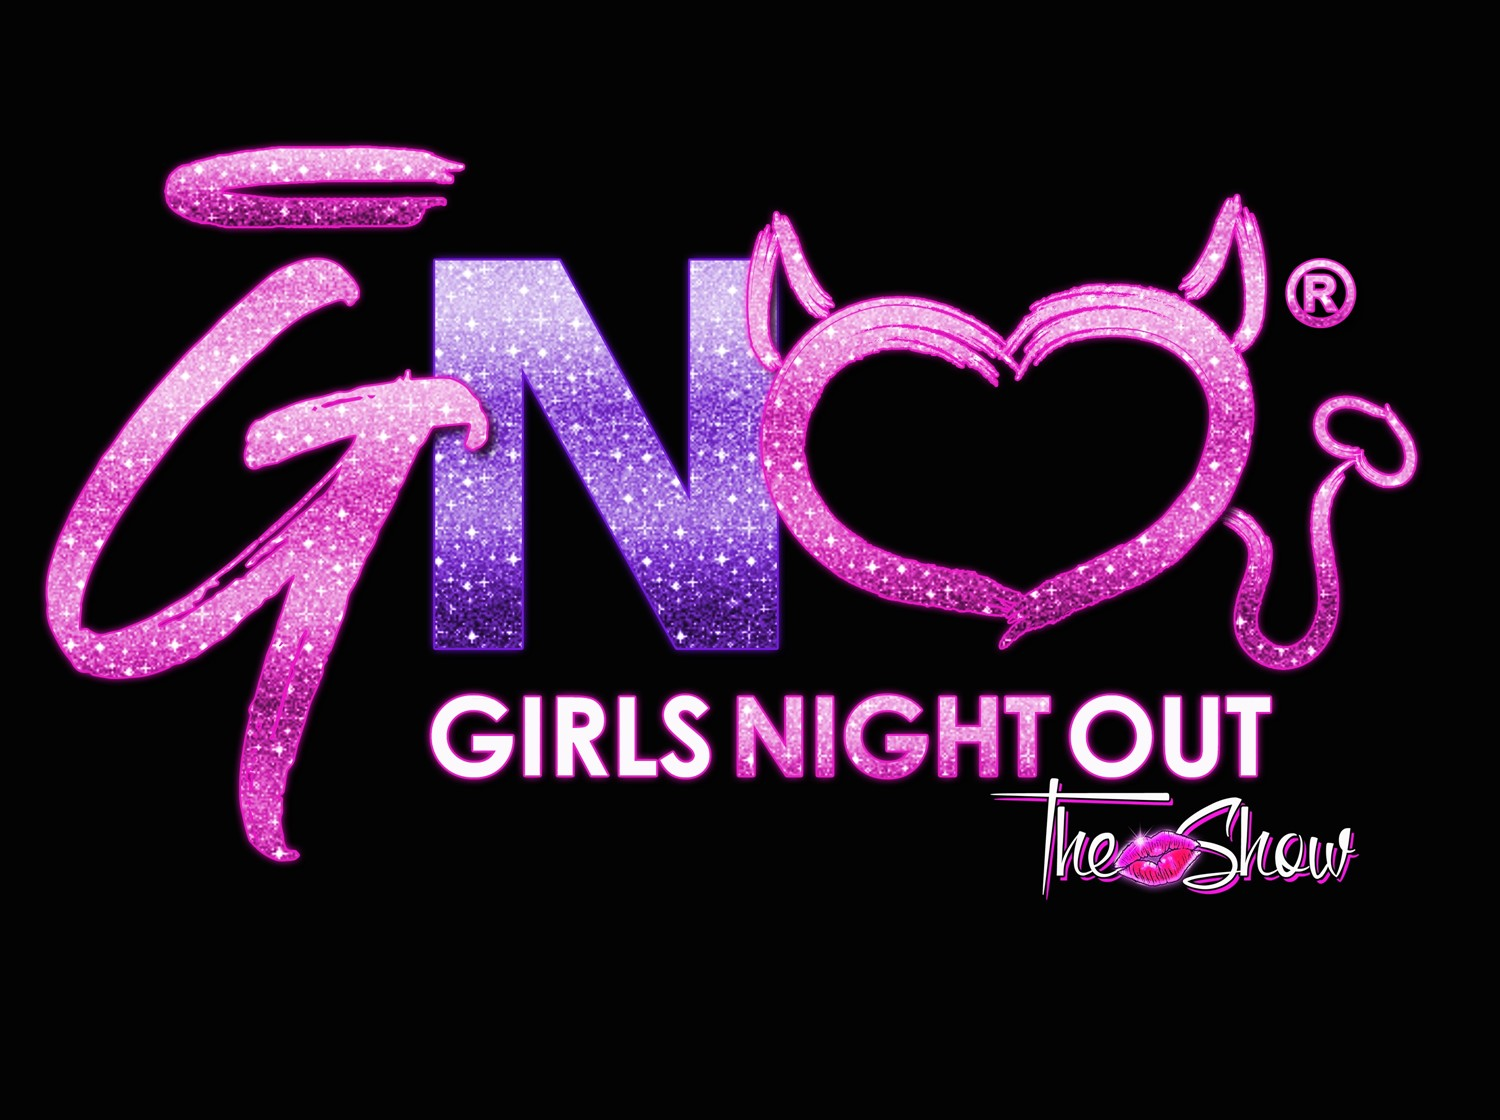 Hank's Honky Tonk (21+) Murfreesboro, TN on Mar 01, 20:00@Hank's Honky Tonk - Buy tickets and Get information on Girls Night Out the Show tickets.girlsnightouttheshow.com